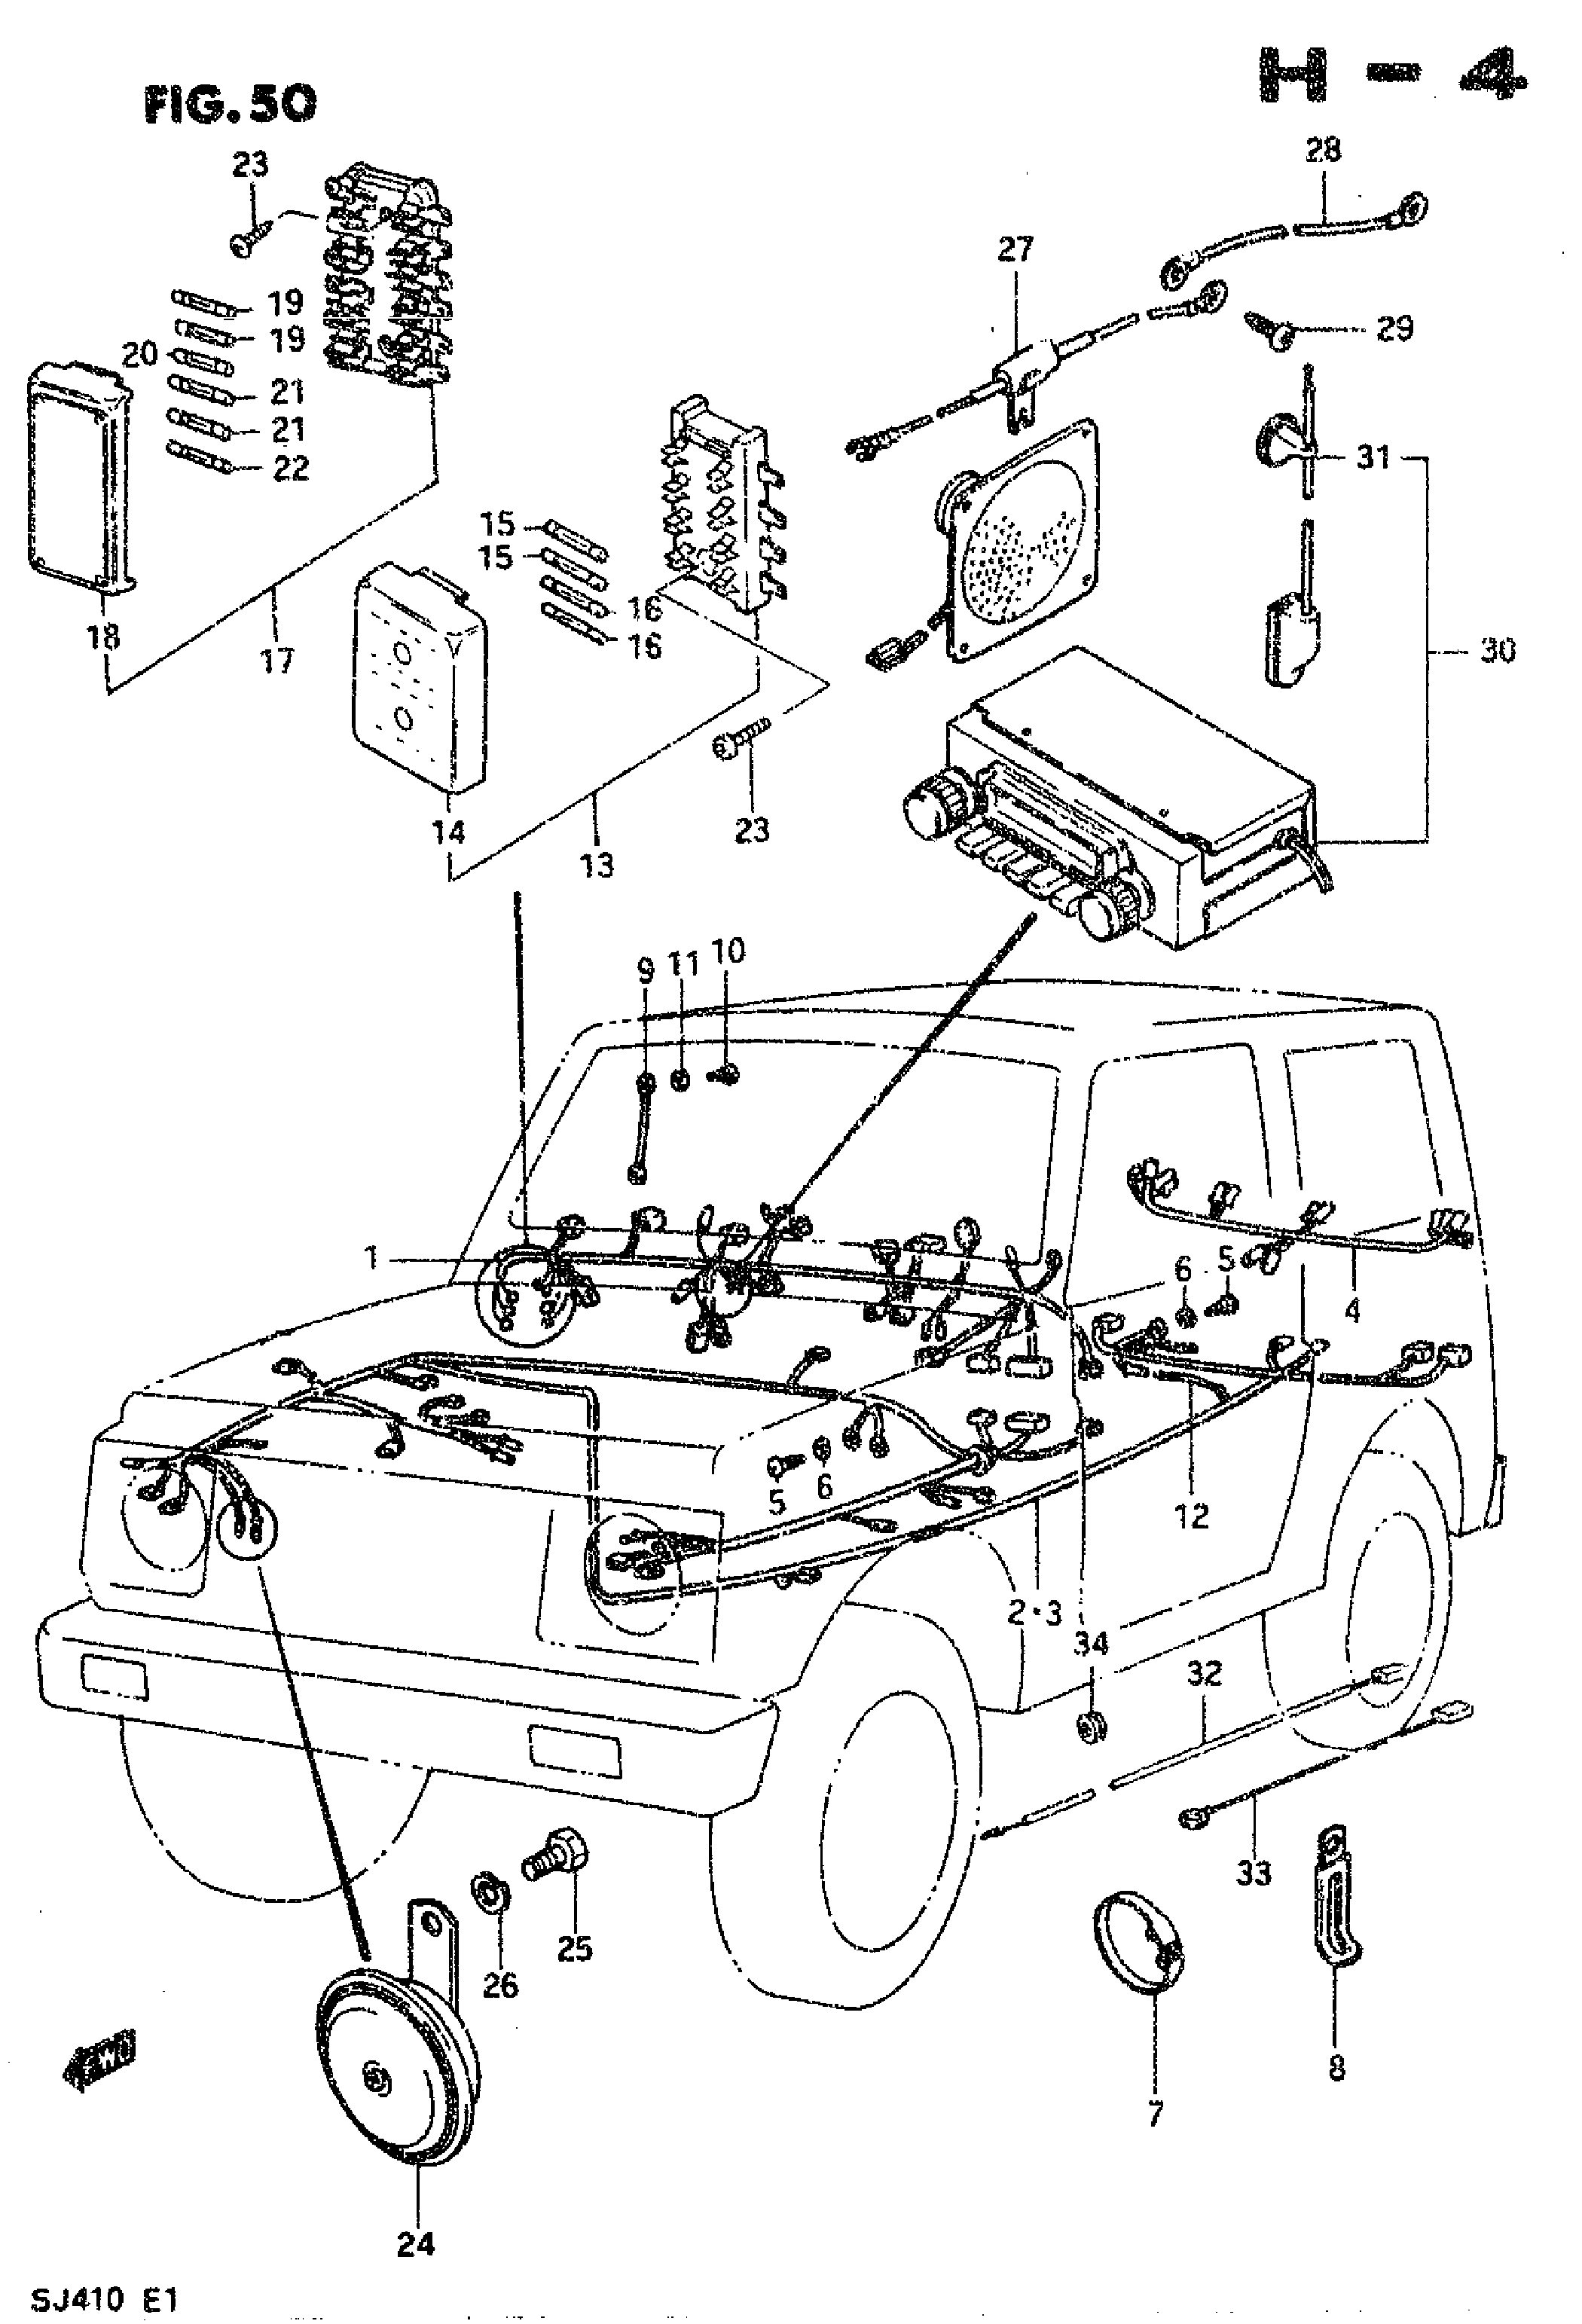 WIRING HARNESS (TYPE 1)